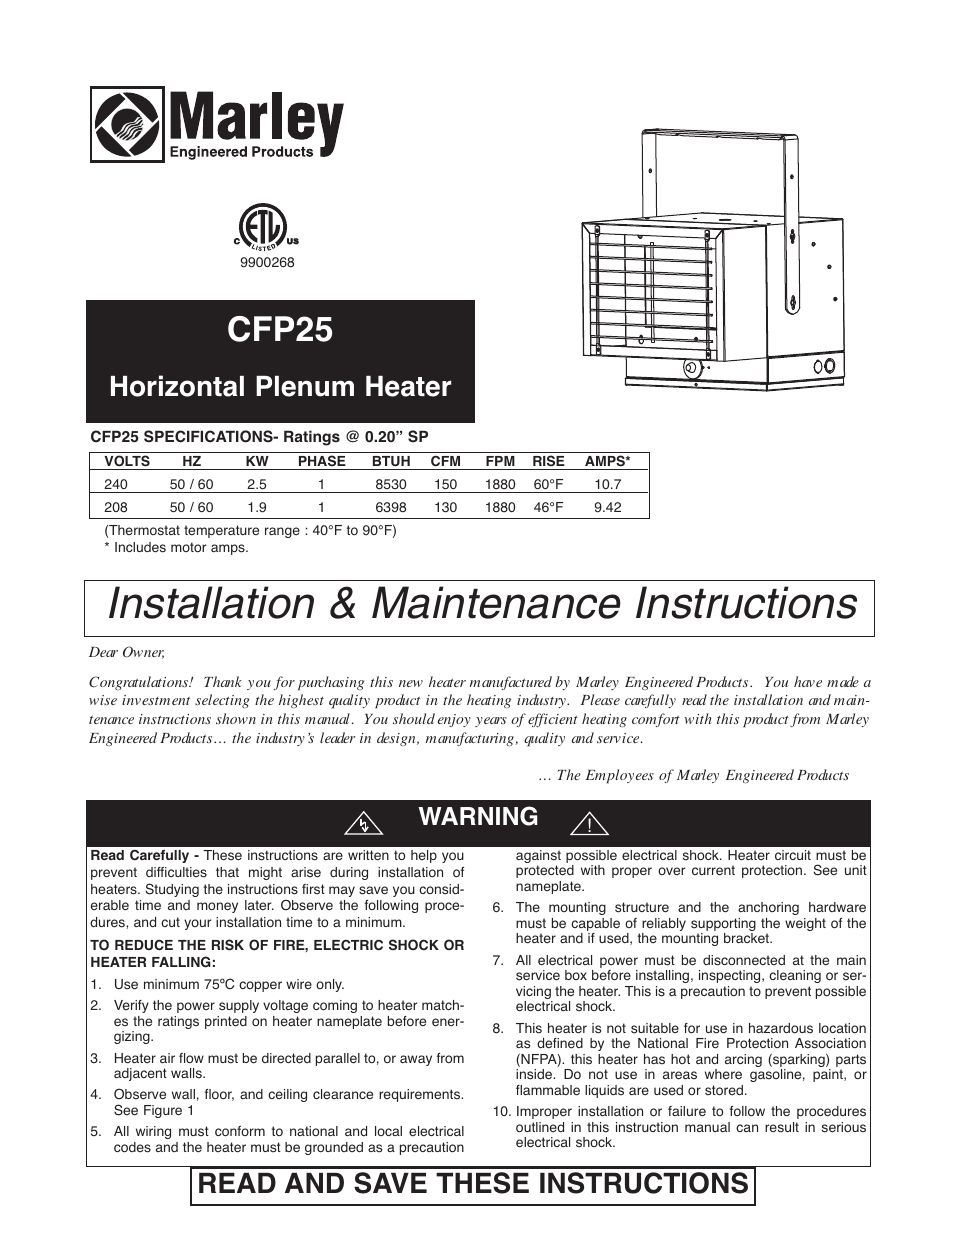 qmark chpr25 compact freeze protection heater user manual 12 pages rh manualsdir com